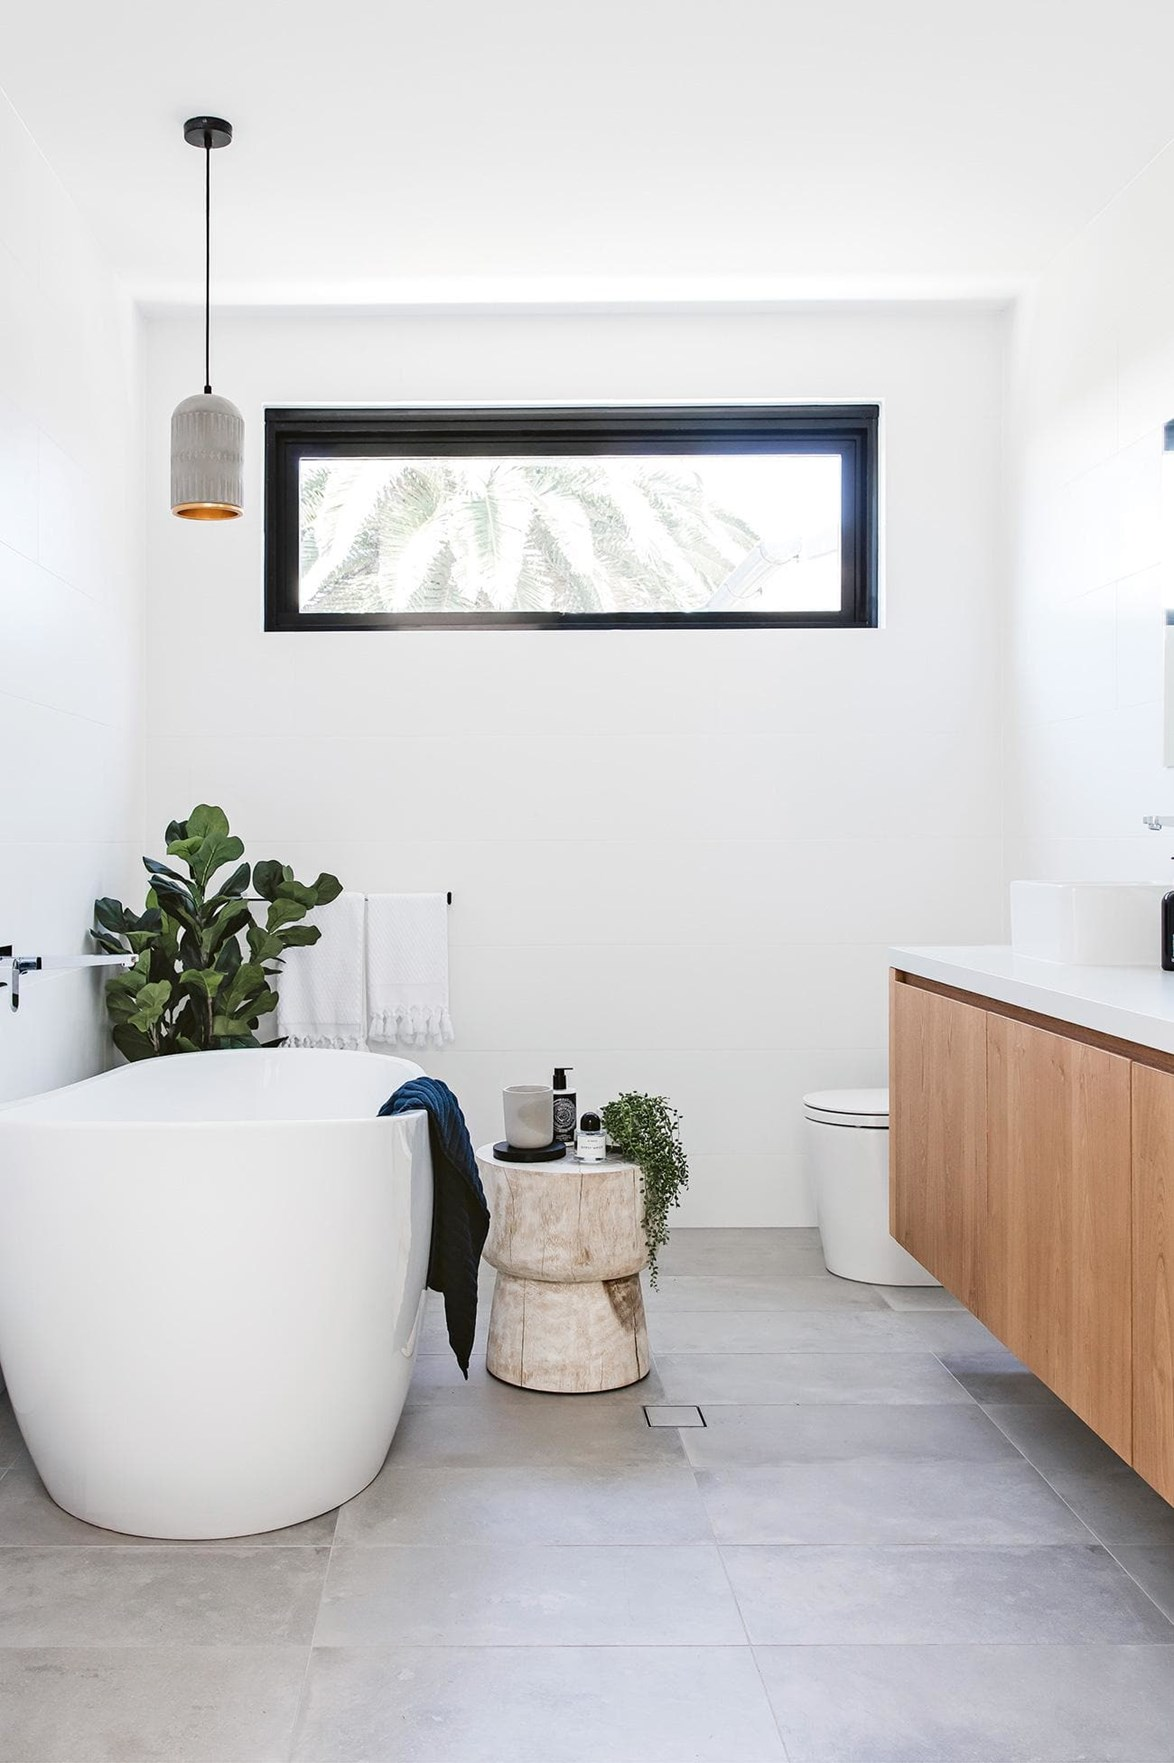 "A black steel-framed window punctuates a fresh white bathroom in a [modern home on the Northern Beaches](https://www.homestolove.com.au/step-inside-this-modern-northern-beaches-home-18400|target=""_blank""). *Photo: Maree Homer / Styling: Kristin Rawson*"